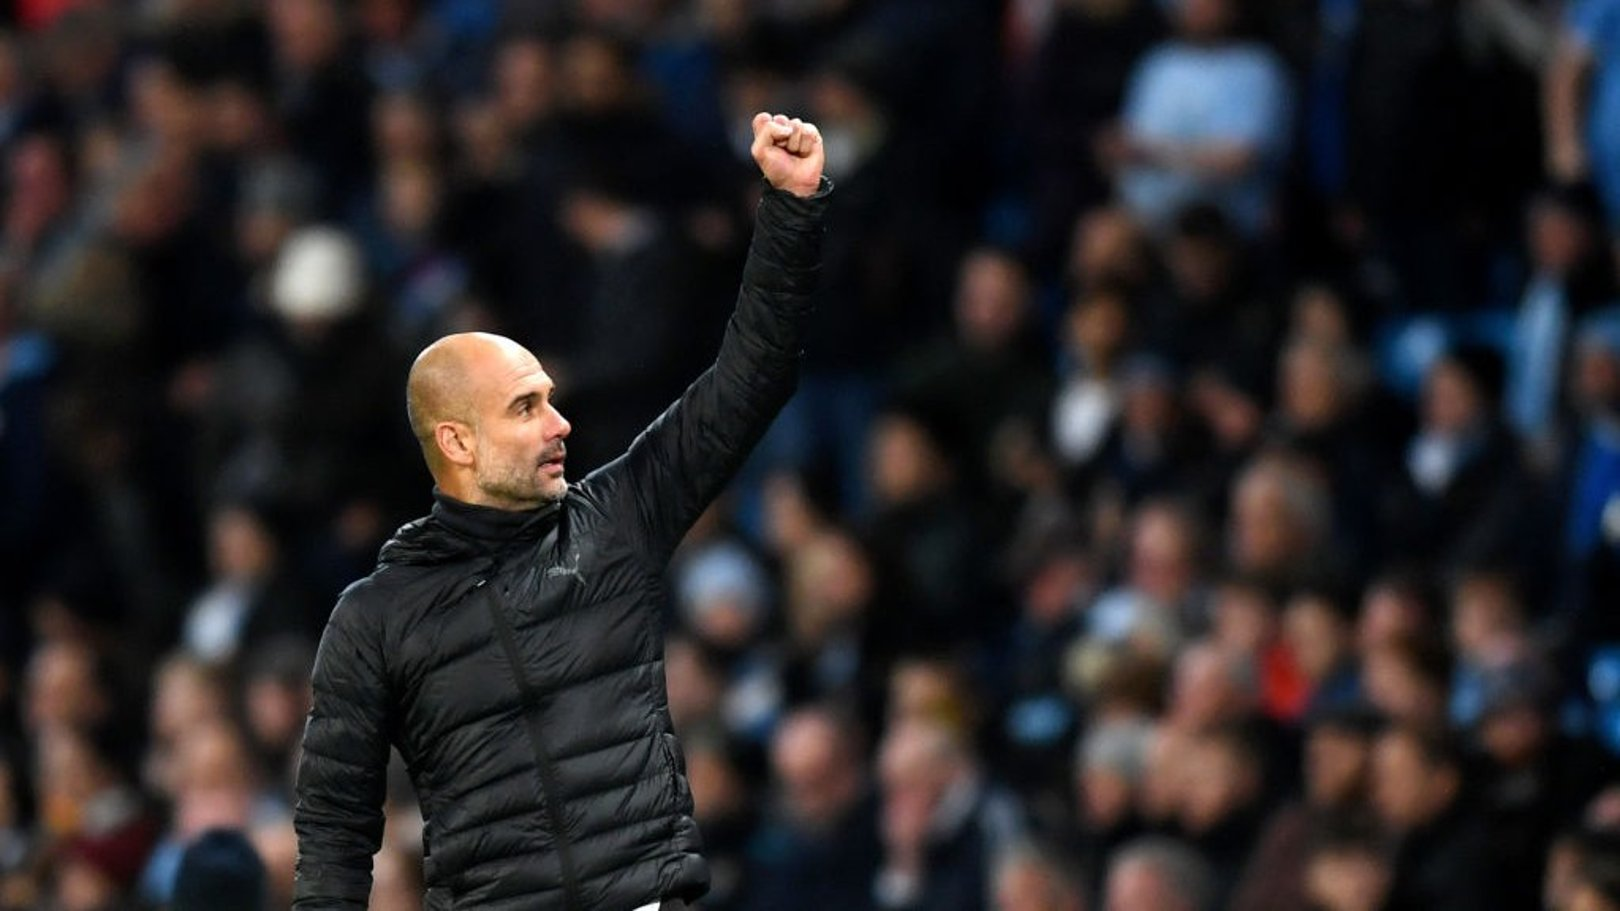 DELIGHT: Pep Guardiola acknowledges the crowd after City's 2-1 win over Southampton.